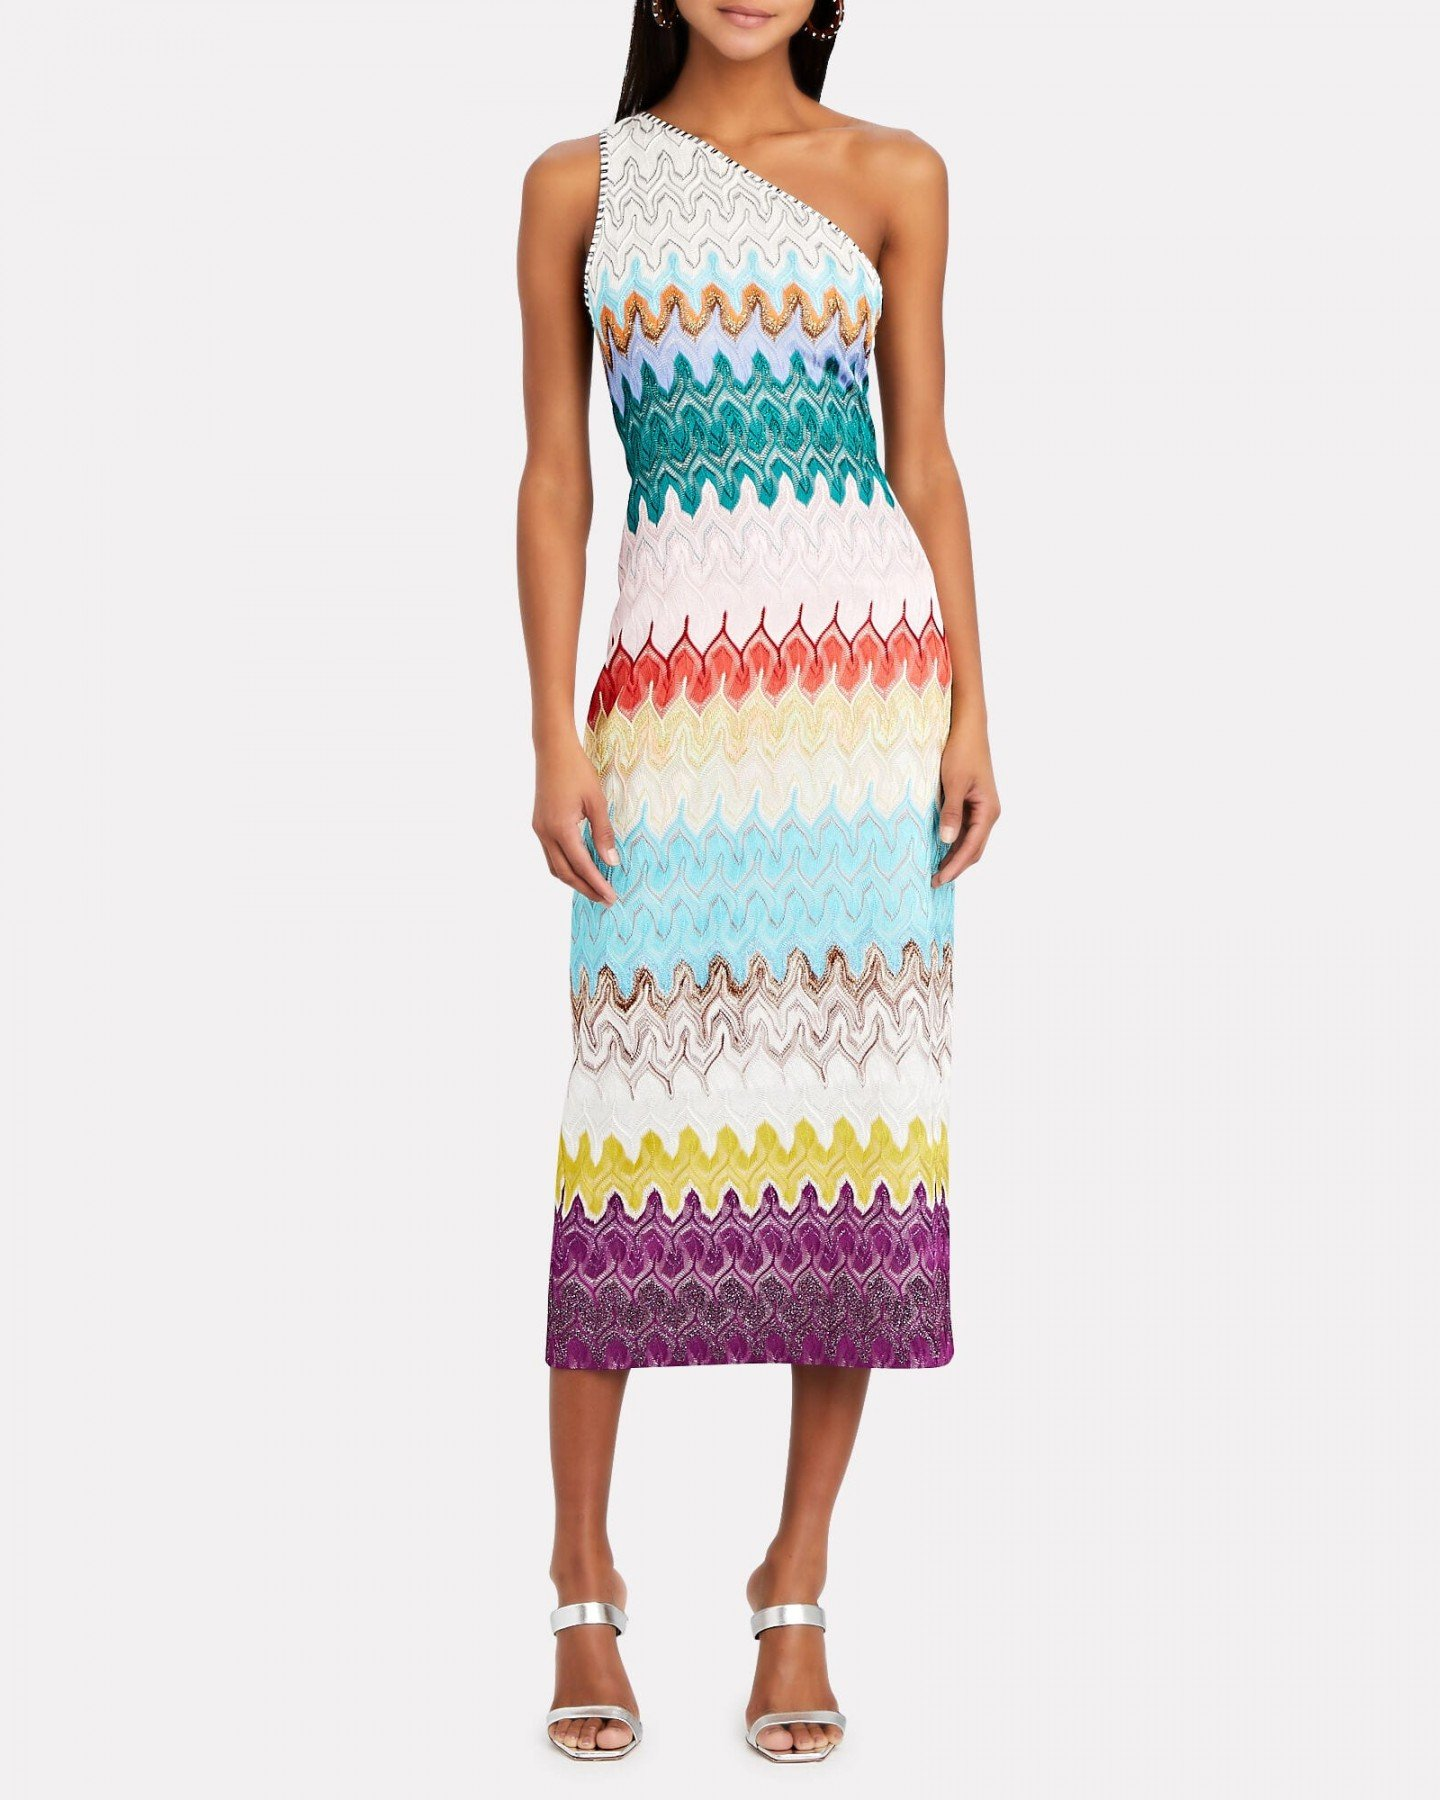 MISSONI One-Shoulder Rainbow Wave Midi Dress